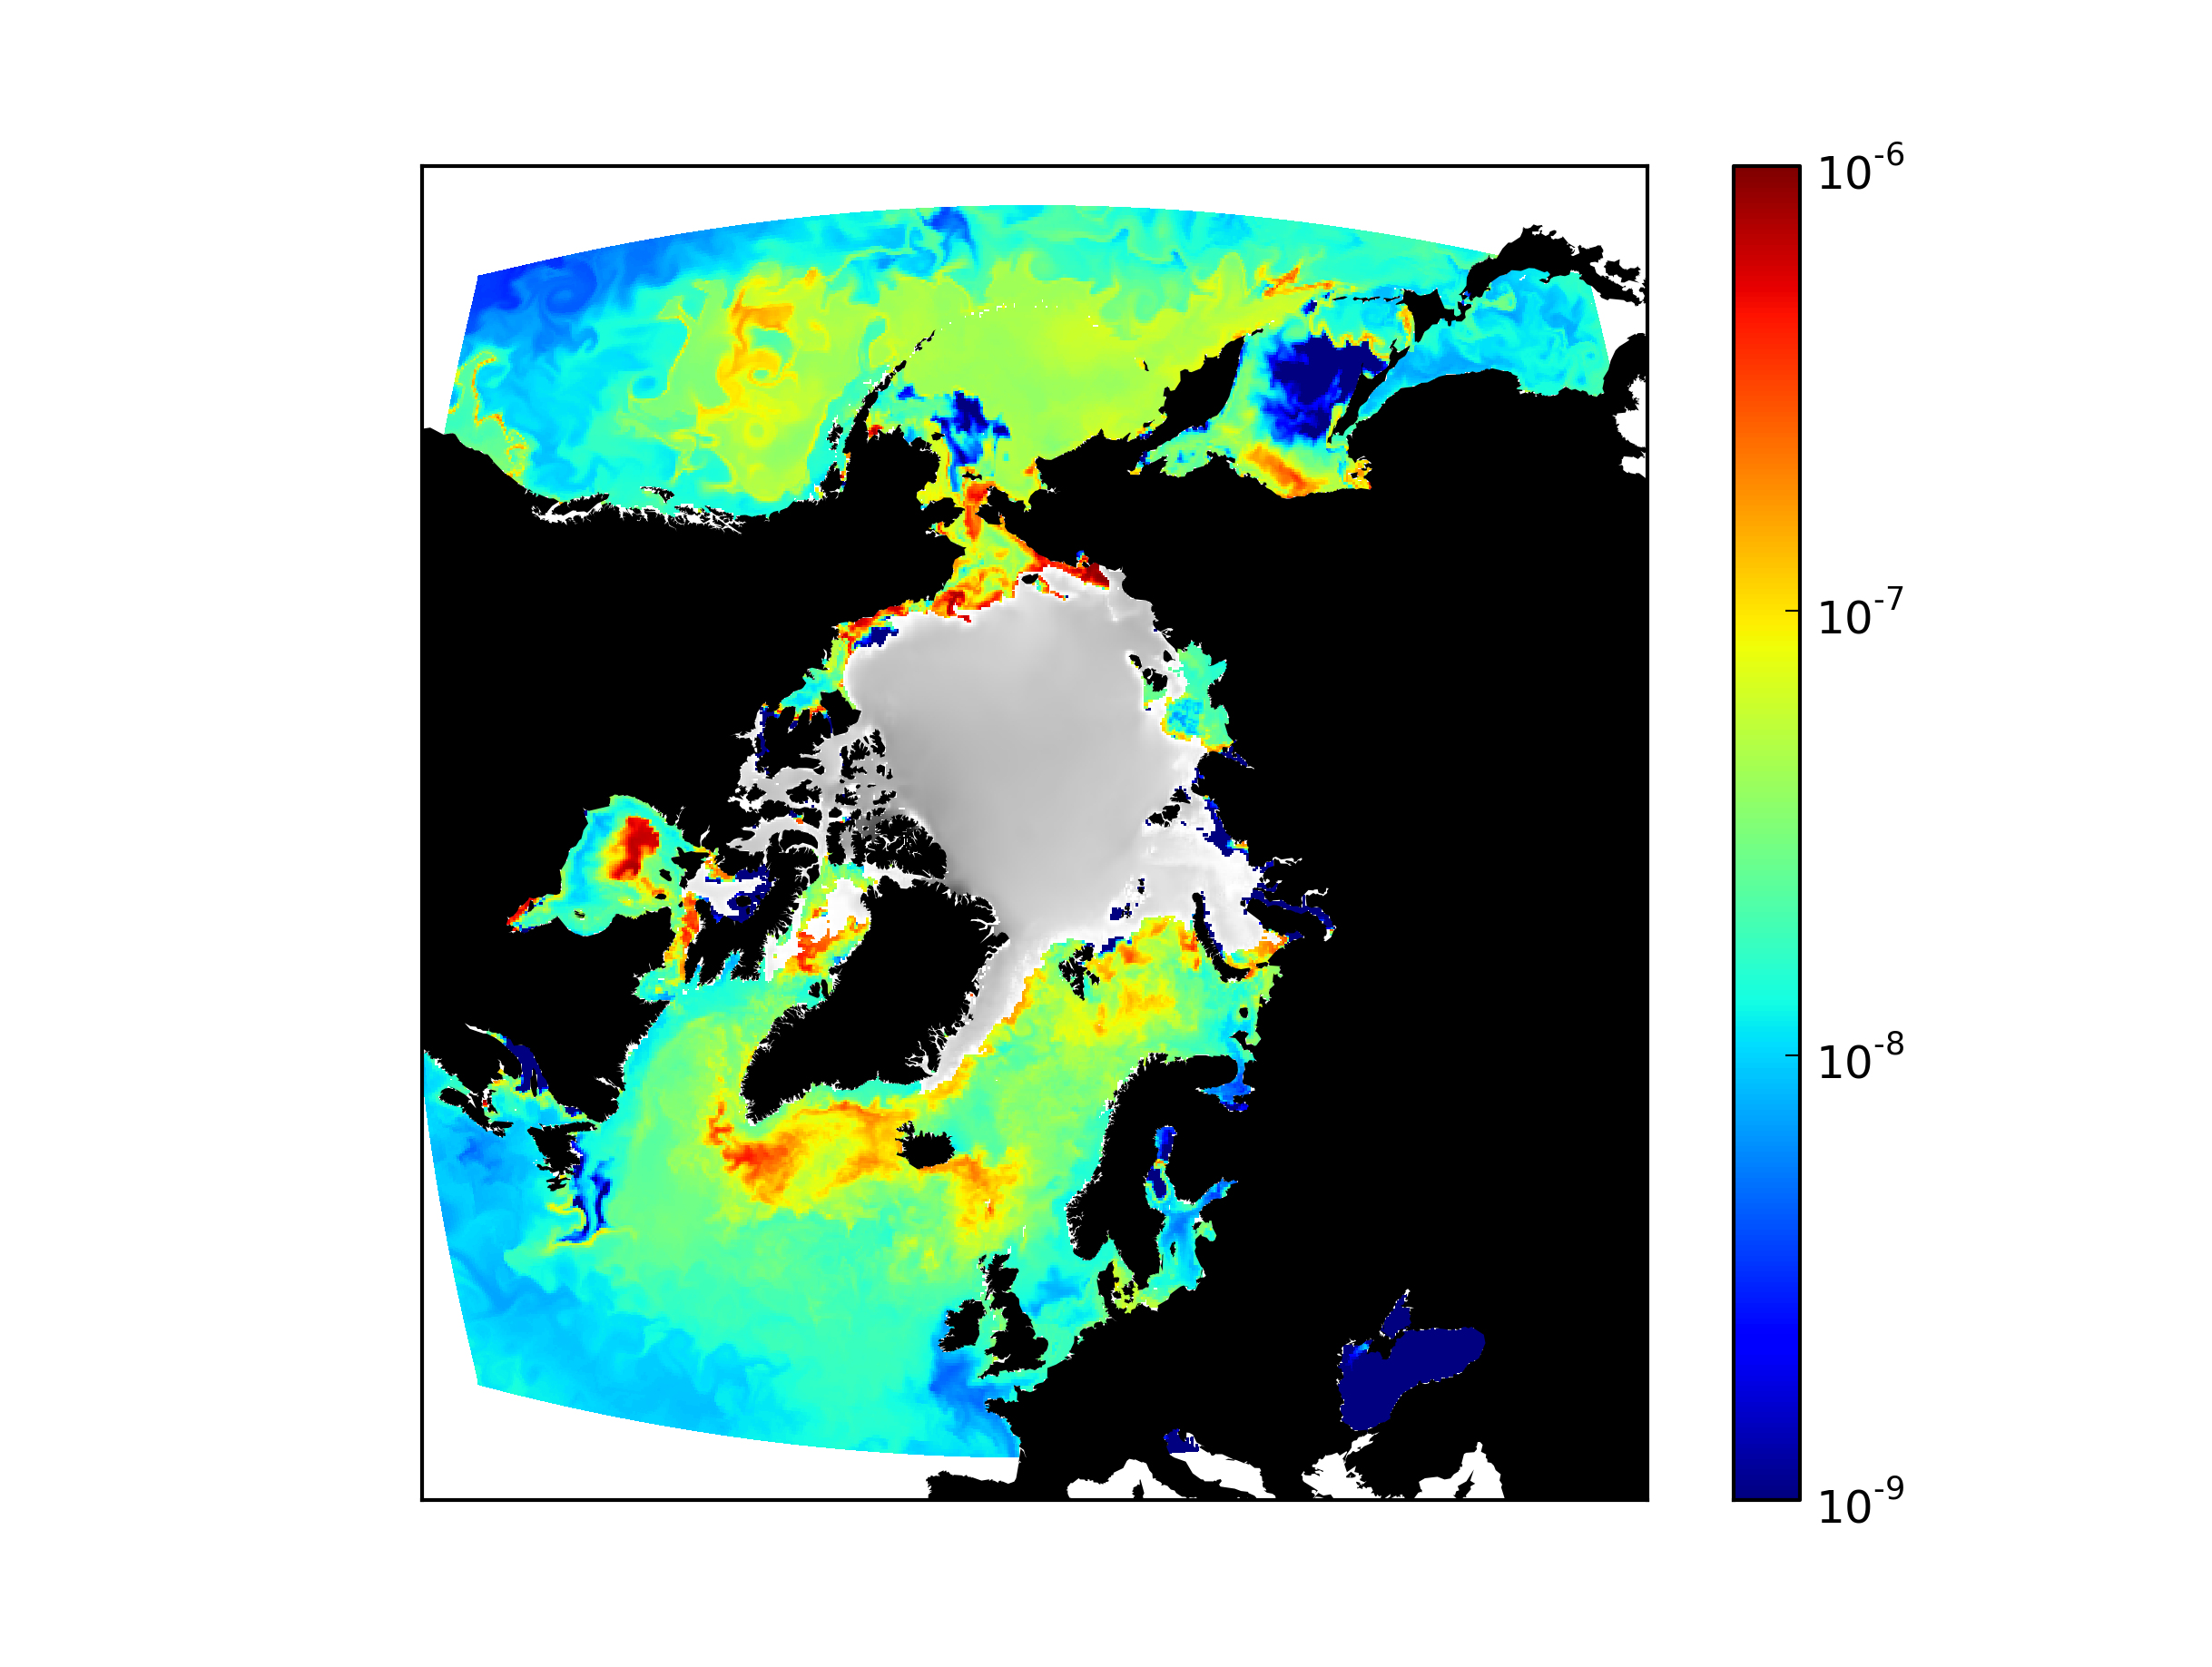 A computer model depicts Arctic primary production in color for September. Sea ice appears in grey while bright spots in some areas show very intense carbon fixation by phytoplankton. Photo credit: Oliver Jahn and Stephanie Dutkiewicz, MIT